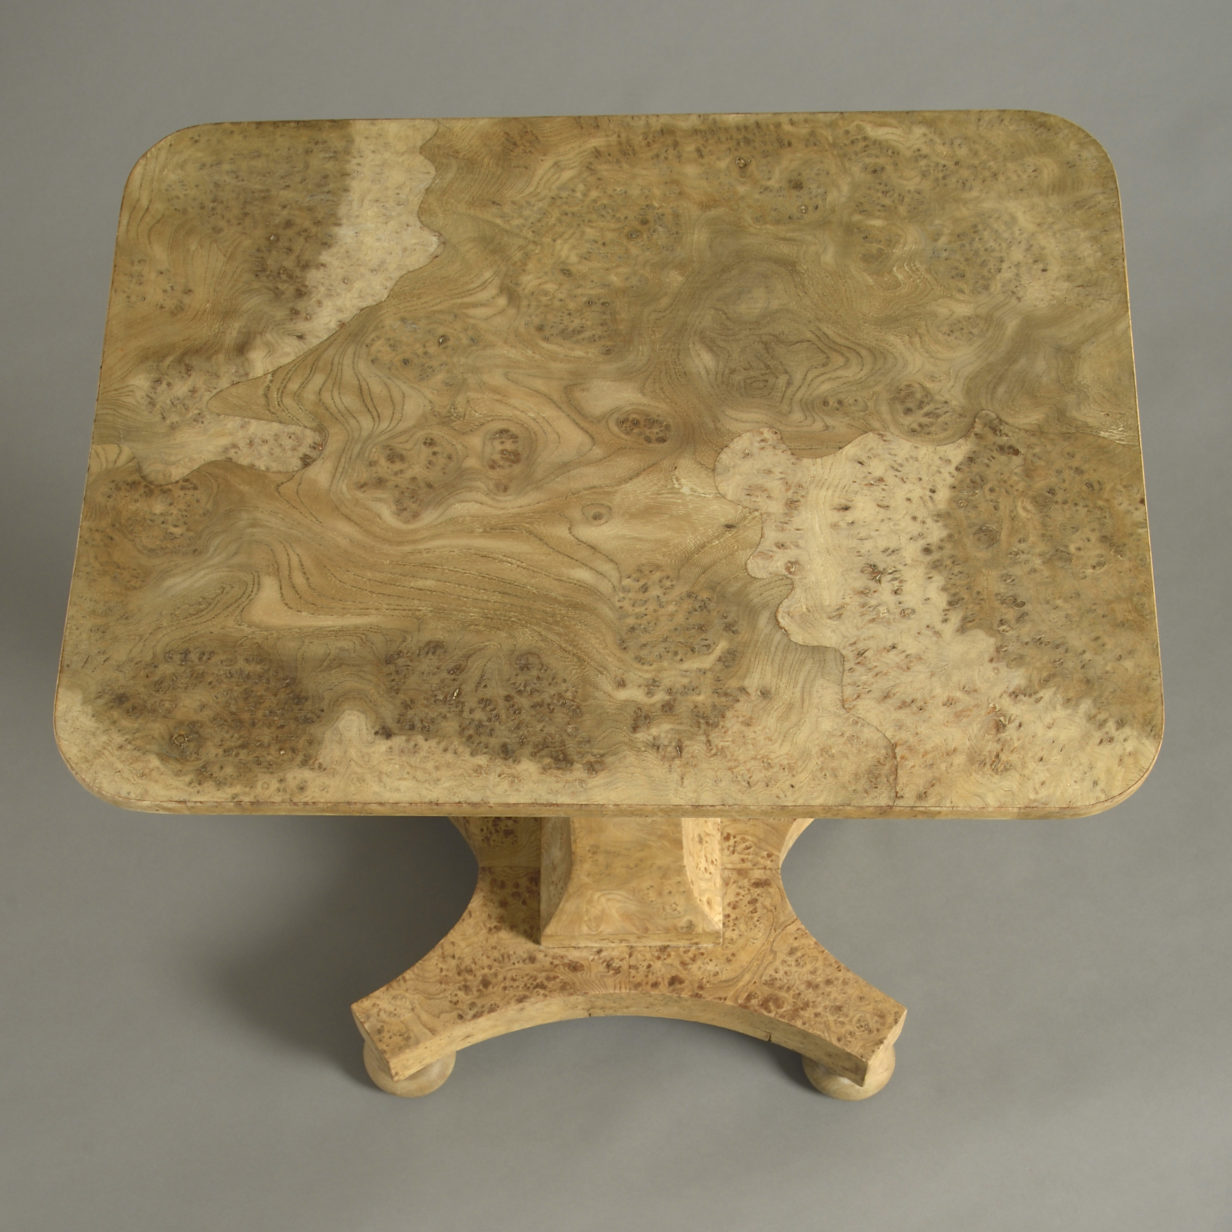 Regency Burr Elm Table